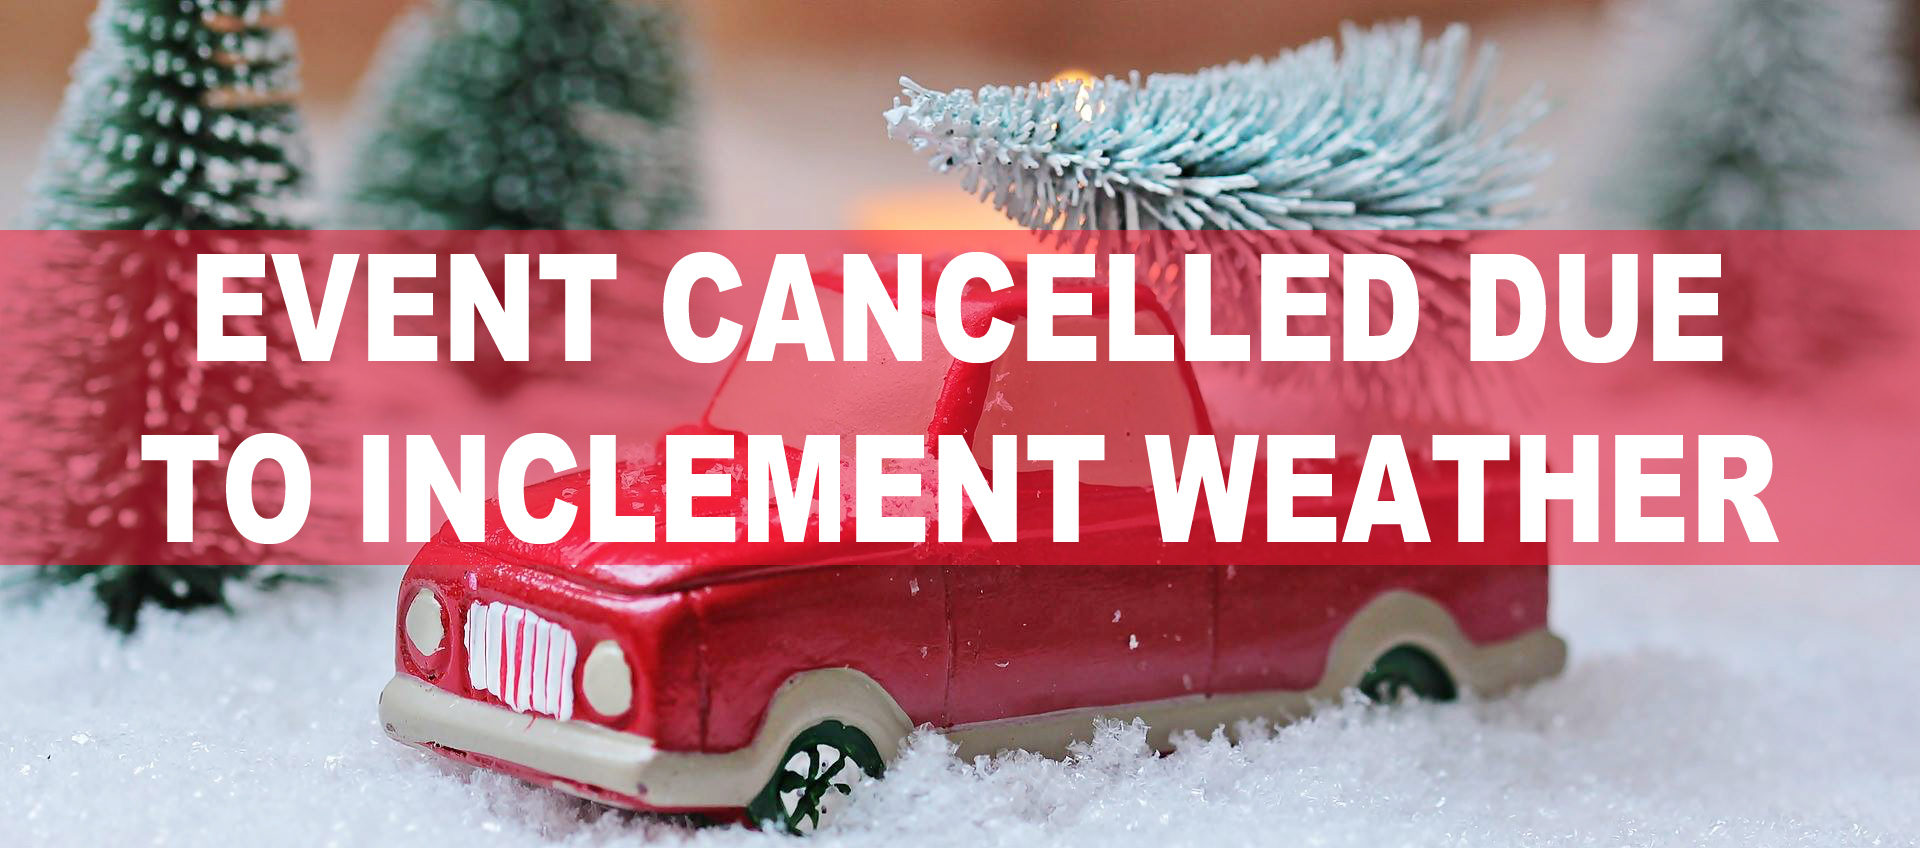 TREE EVENT CANCELLED.jpg